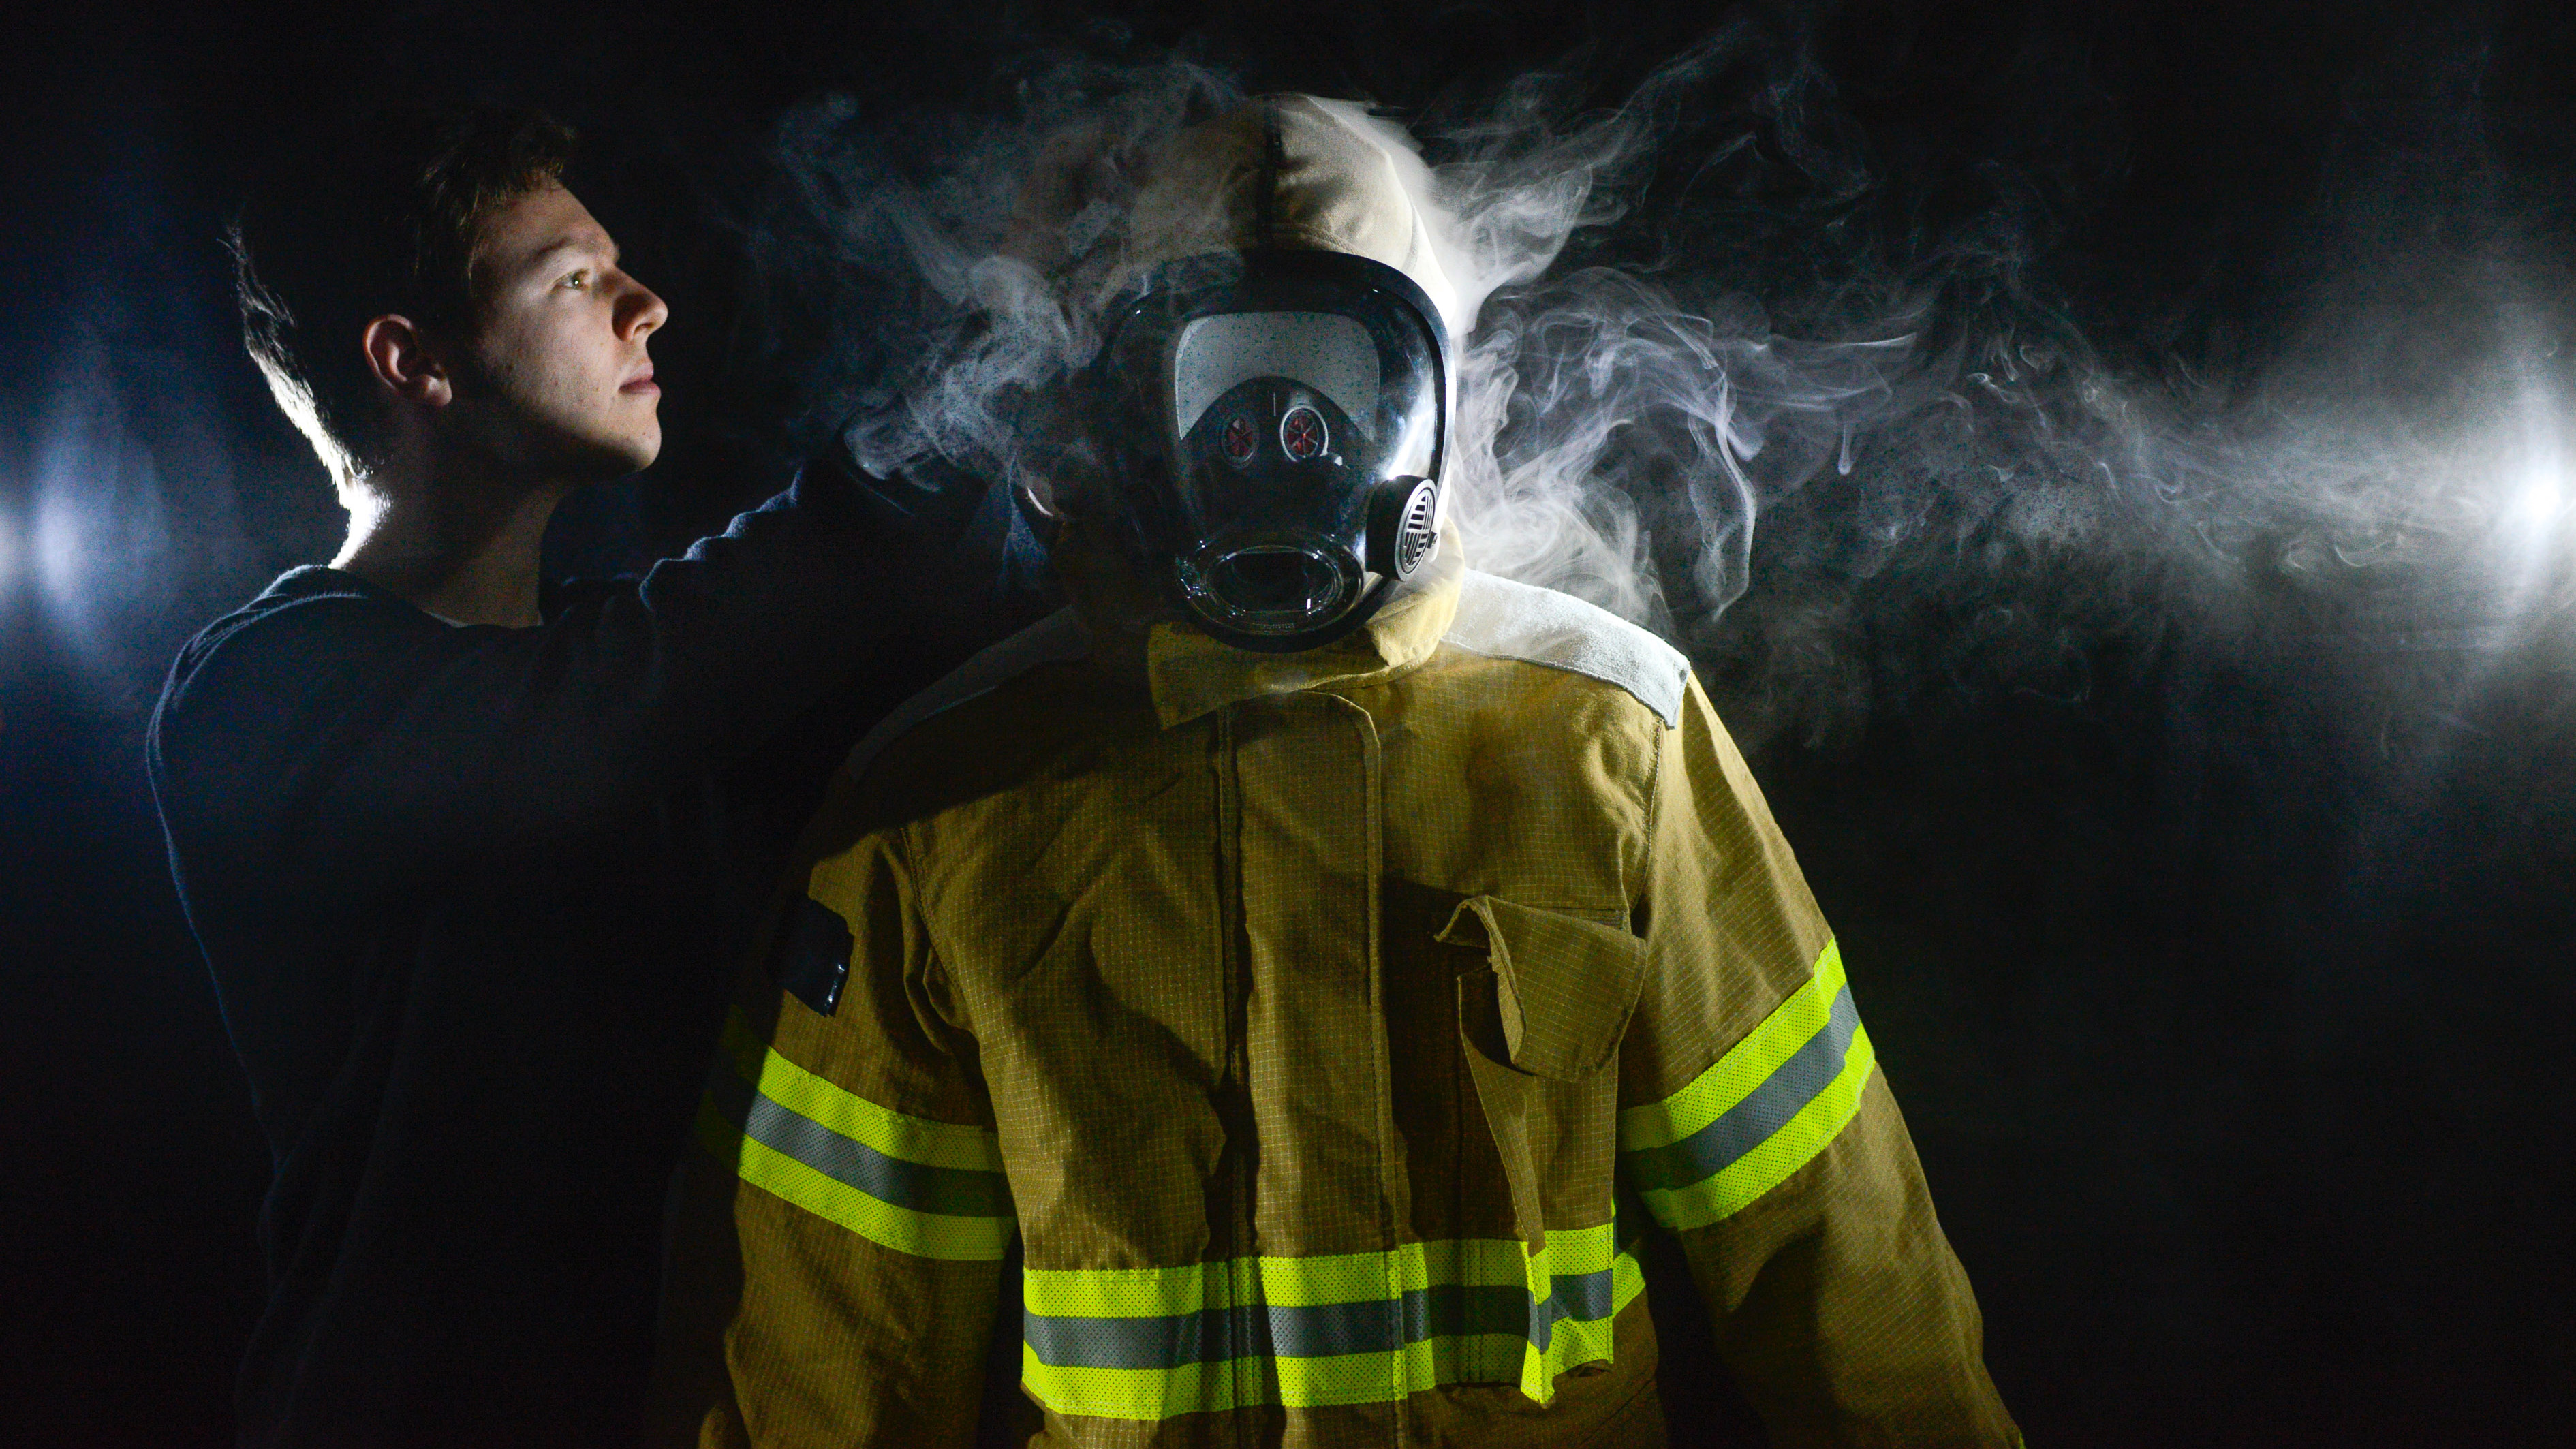 NC State Textiles researcher tests protective gear for firefighters